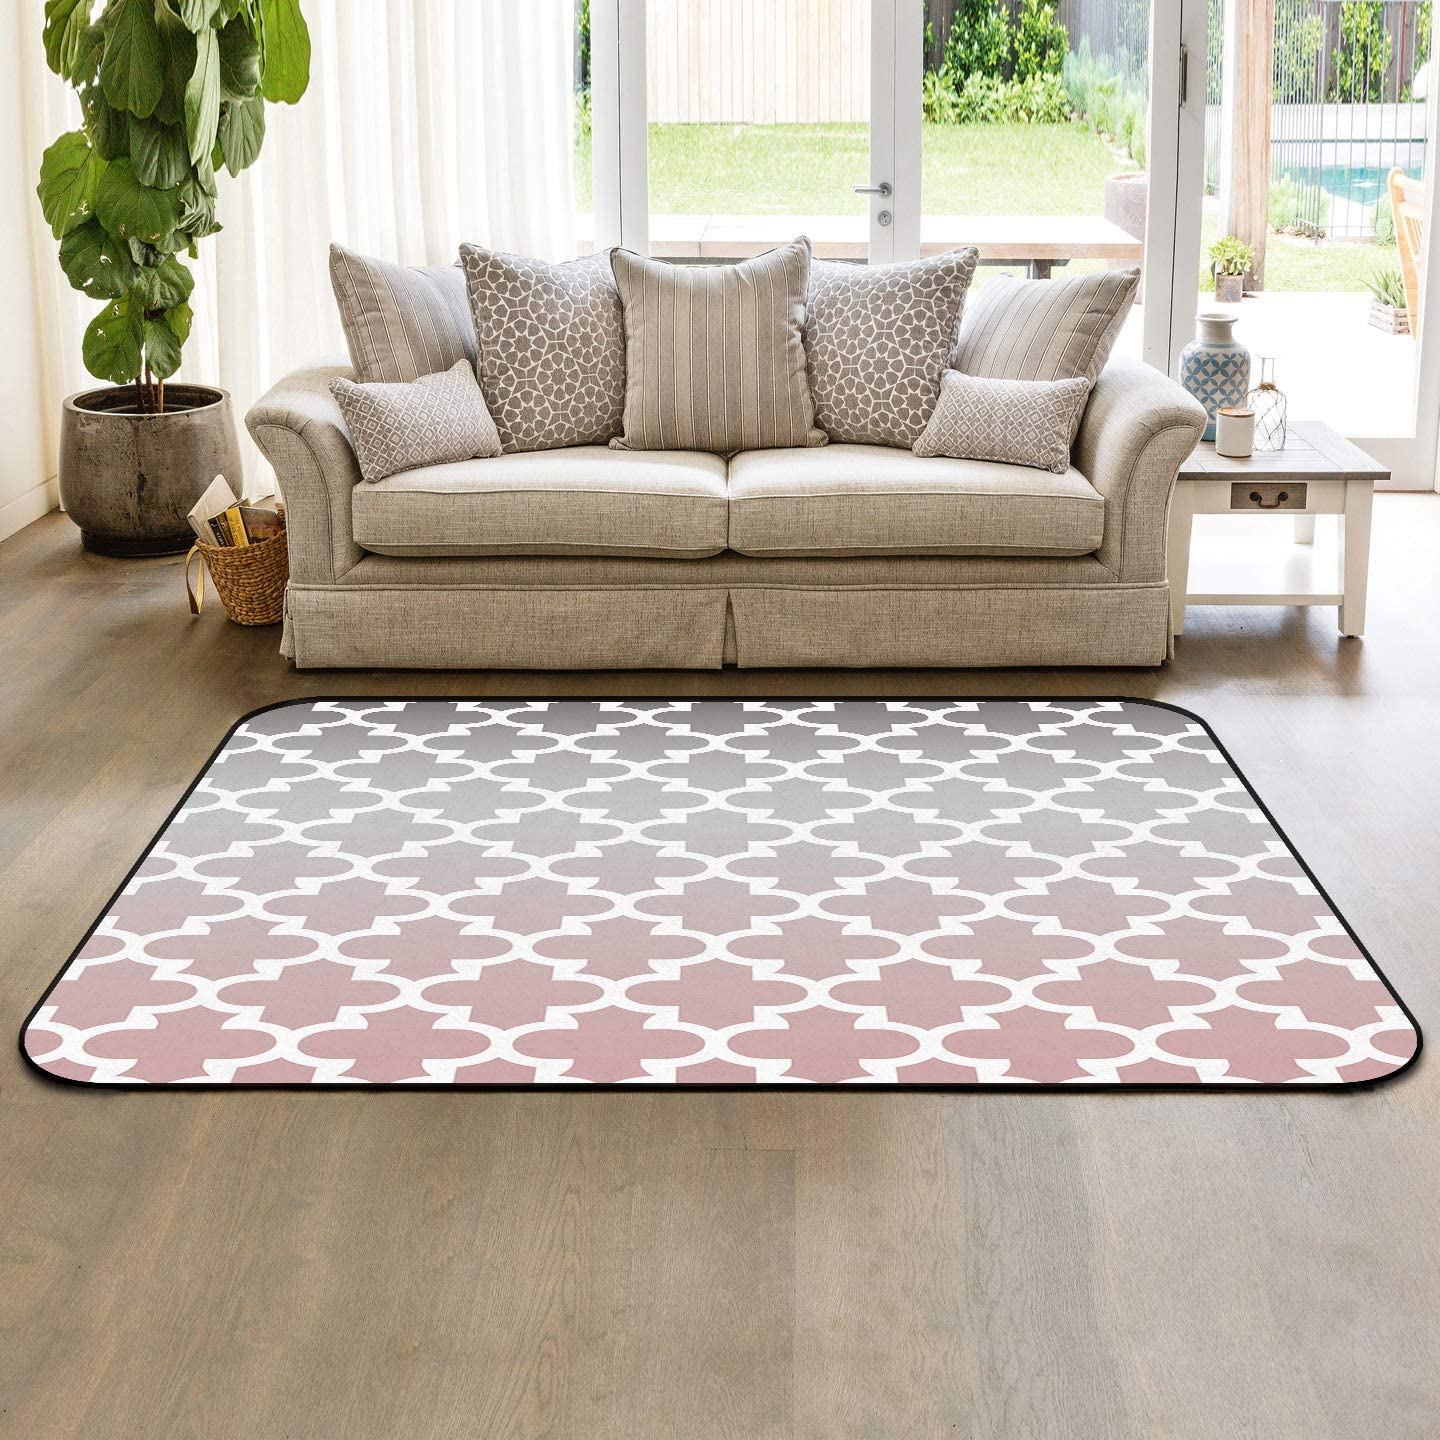 HomeDecorArt Non Slip Indoor Ranking TOP13 Throw Carpet Floor Accent Rugs Omb Shipping included